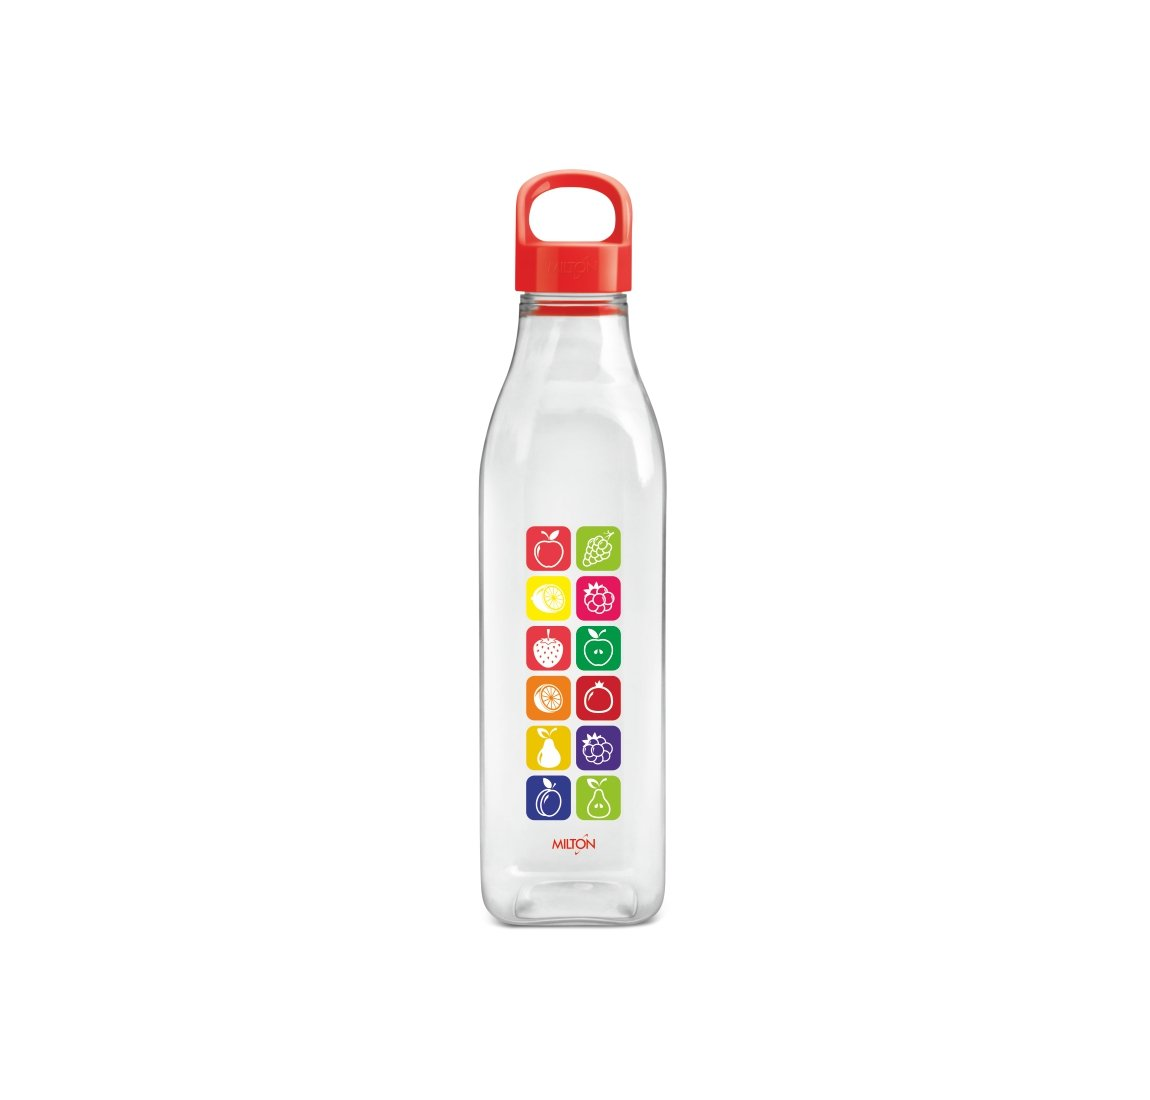 MILTON EVEN 1L PET BOTTLE